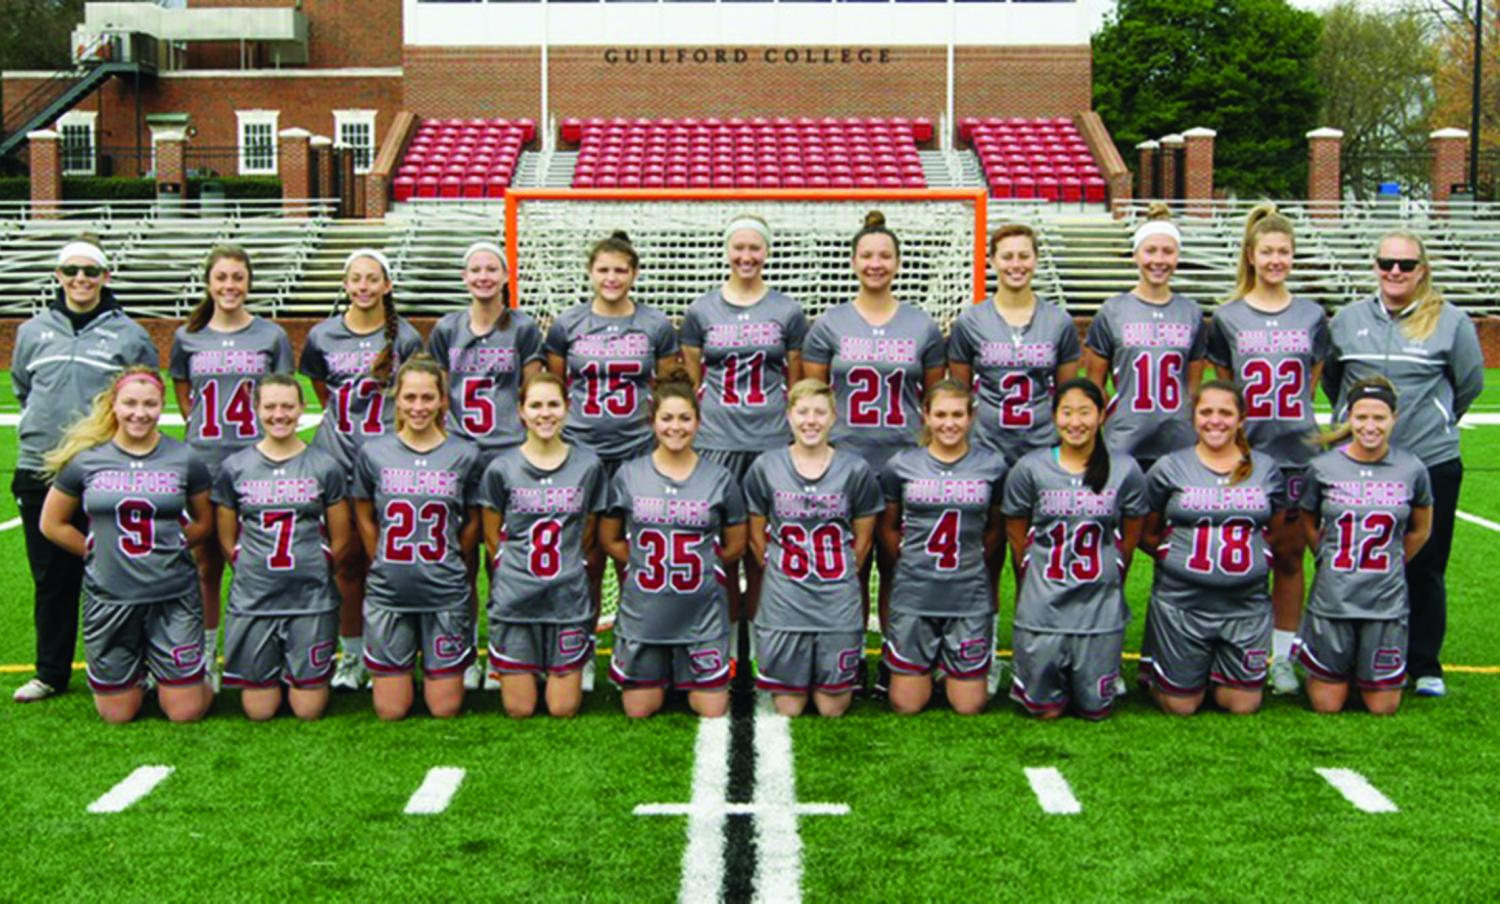 The Guilford College women's Lacrosse team poses for a group portrait./Photo courtesy of Guilford College Athletics